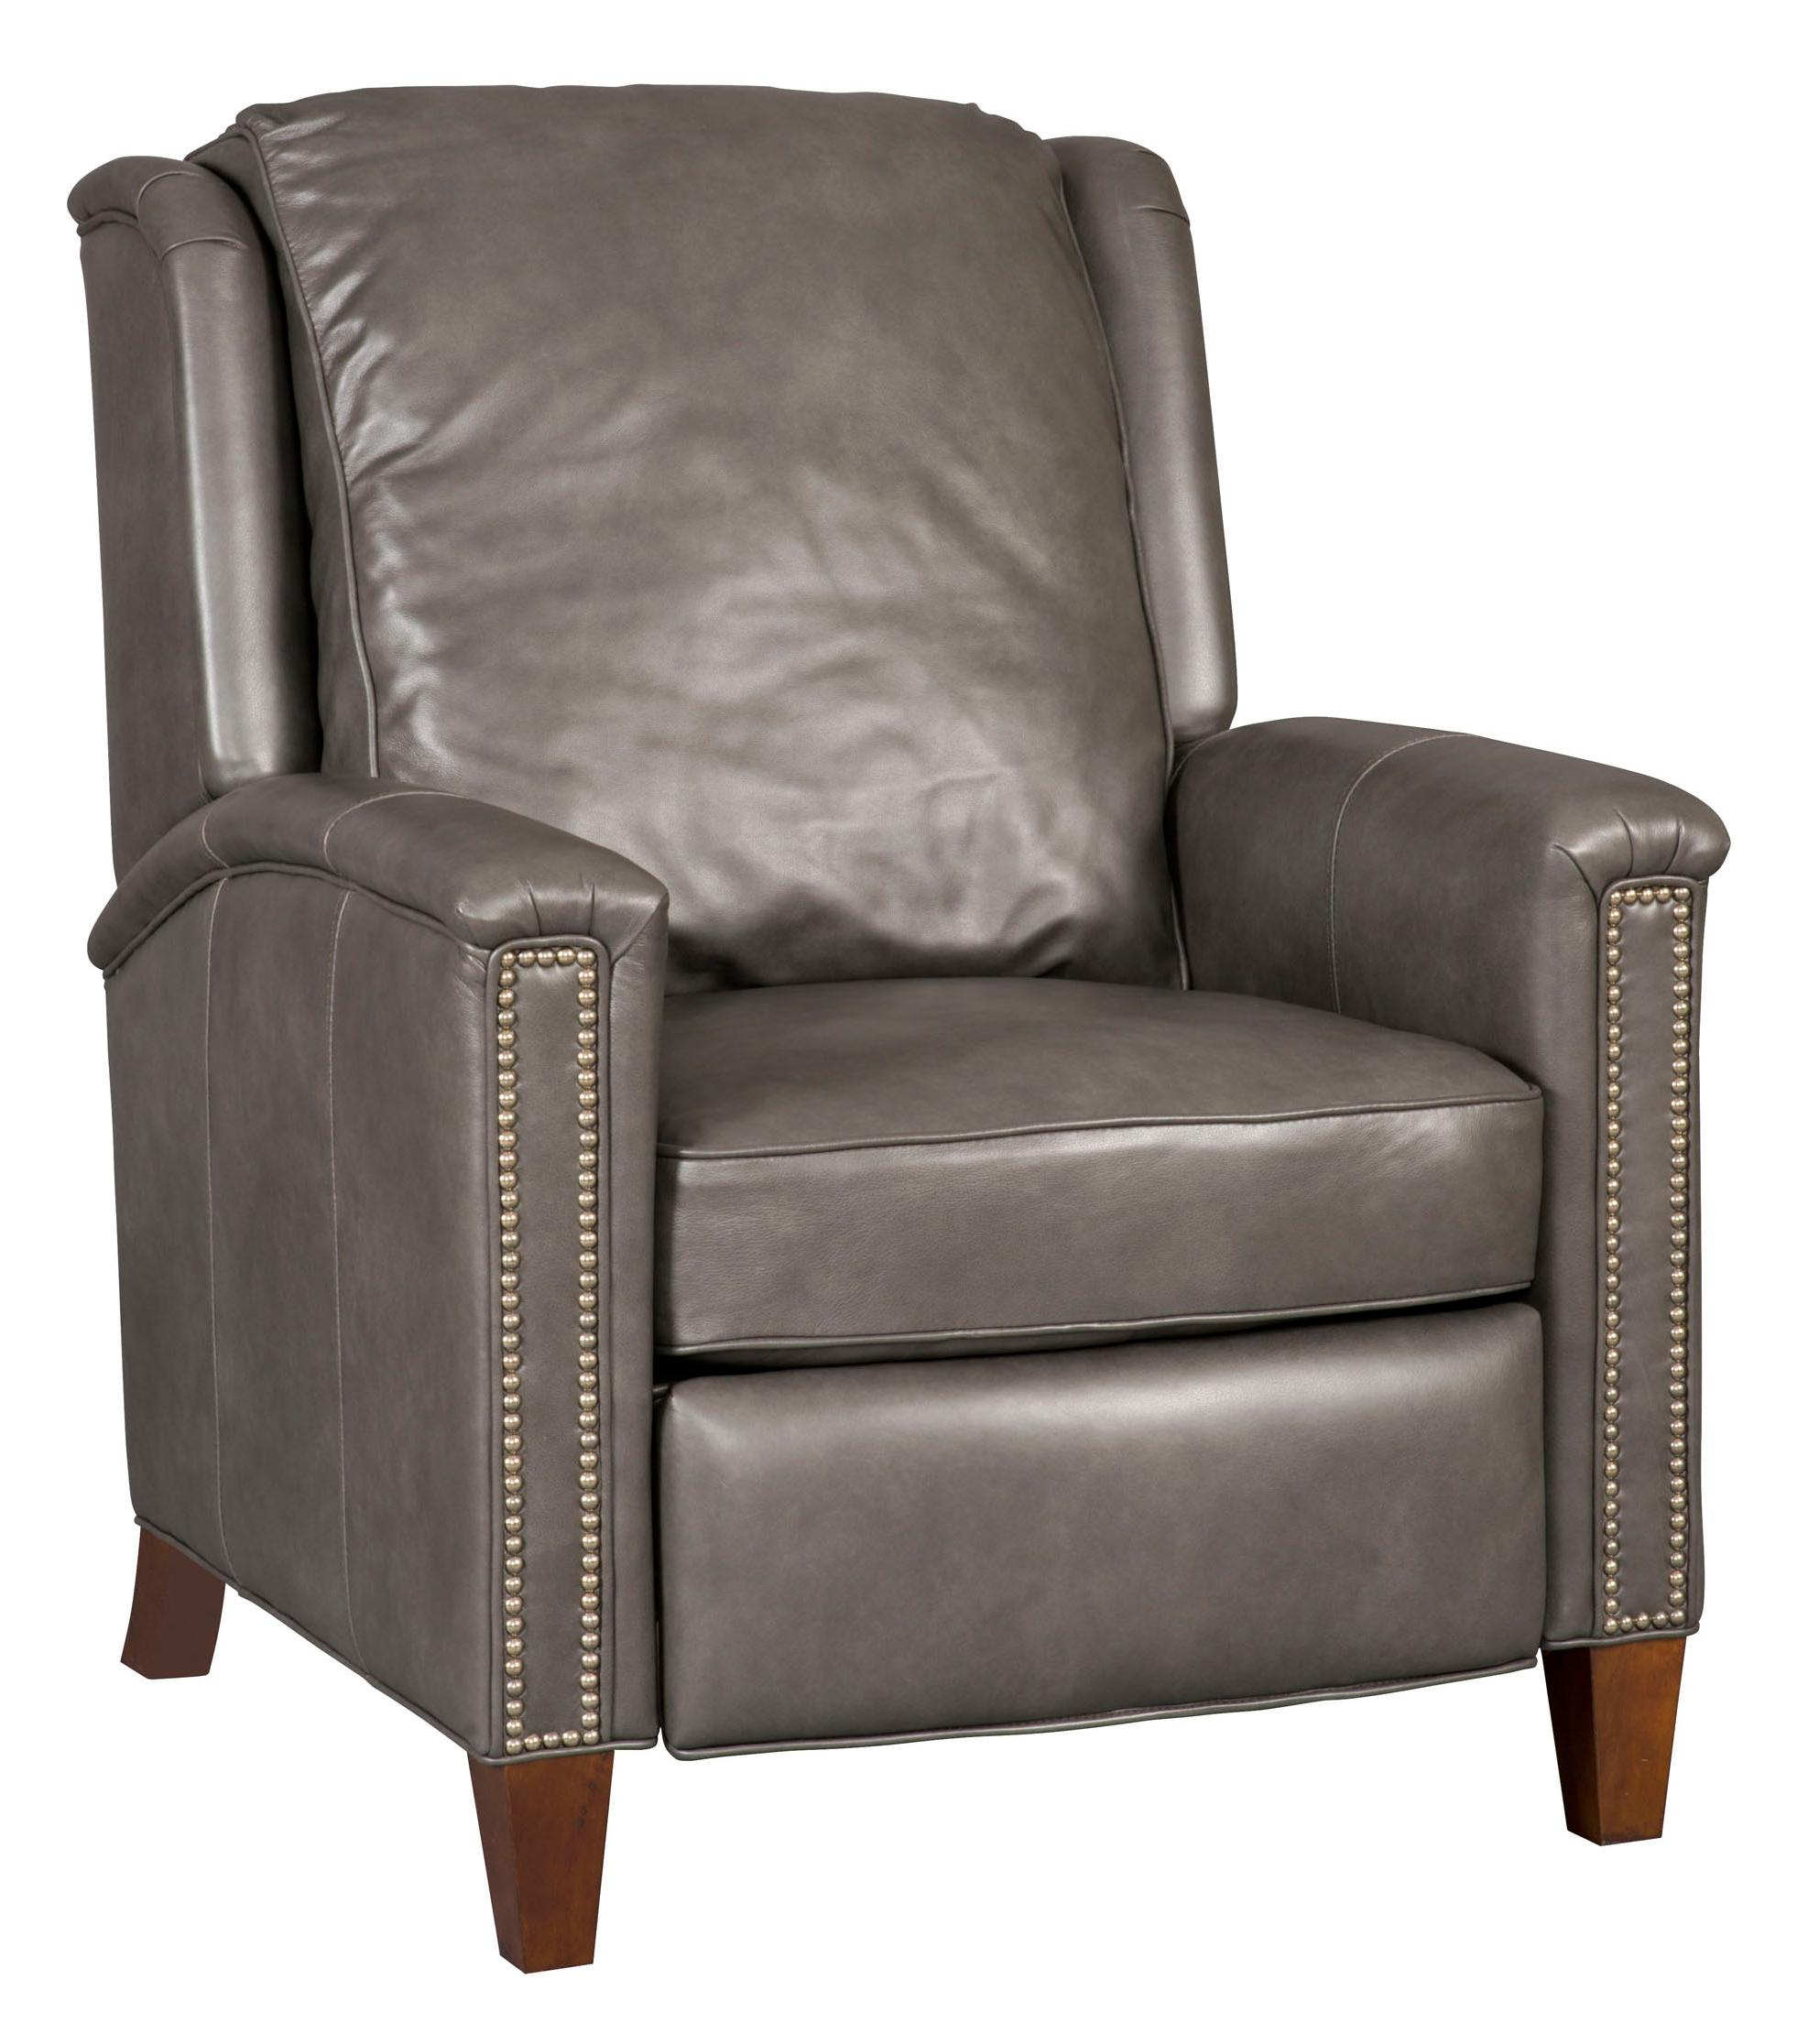 Reclining Chairs Transitional High Leg Recliner by Hooker Furniture at Miller Waldrop Furniture and Decor